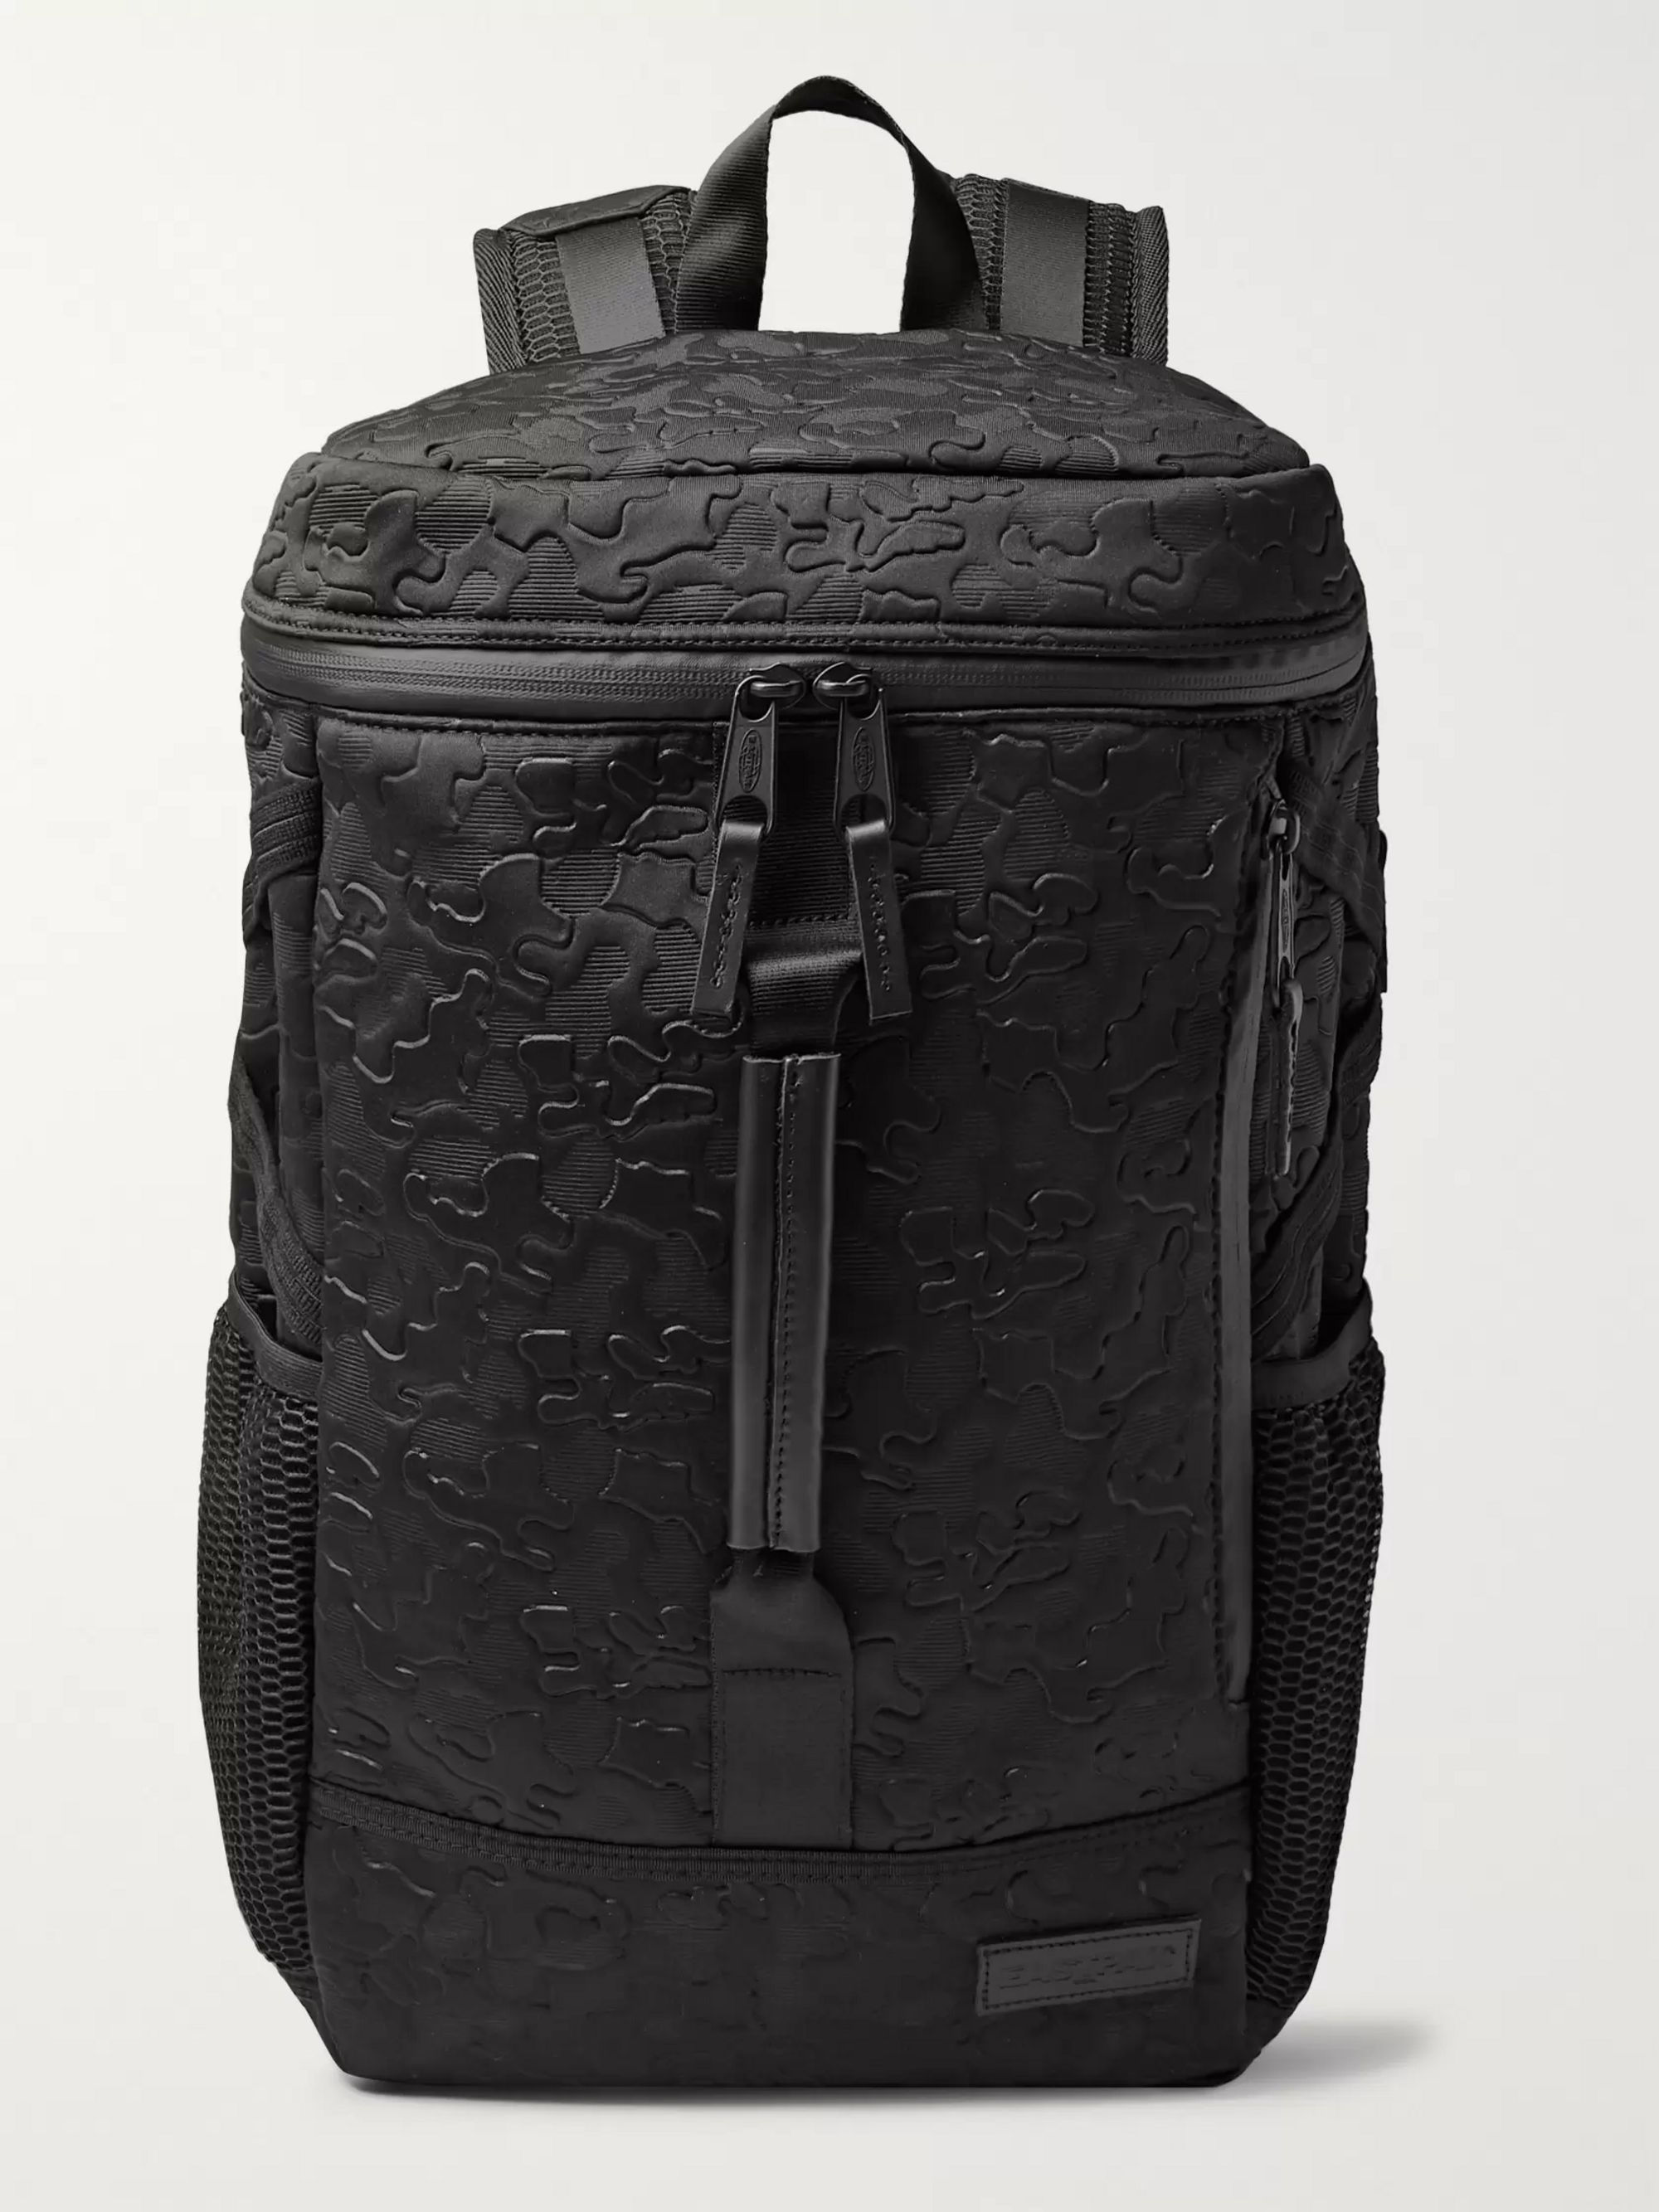 Eastpak Bust Embossed Neoprene Backpack